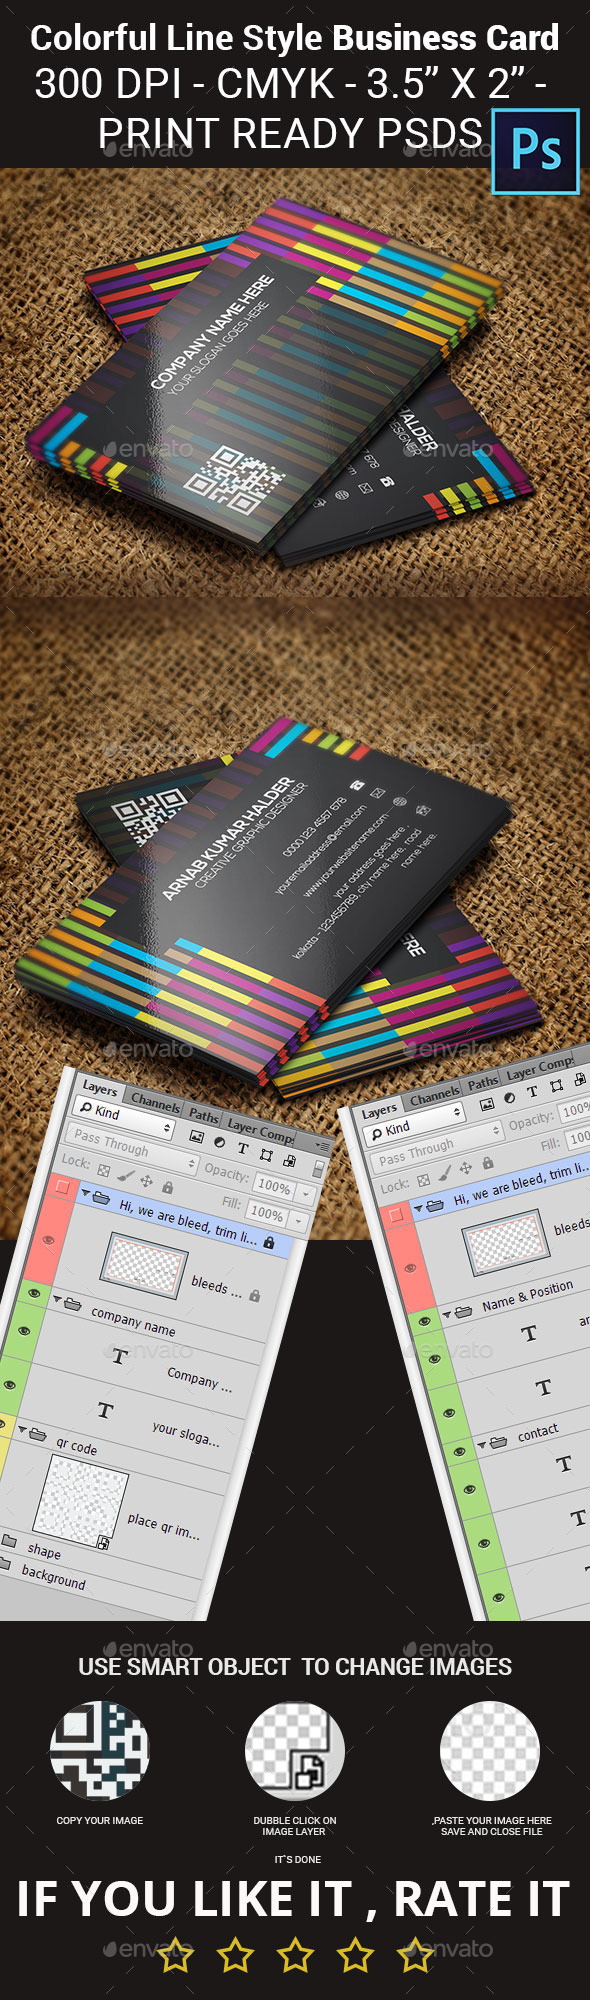 Colorful Line Style Business Card - Creative Business Cards